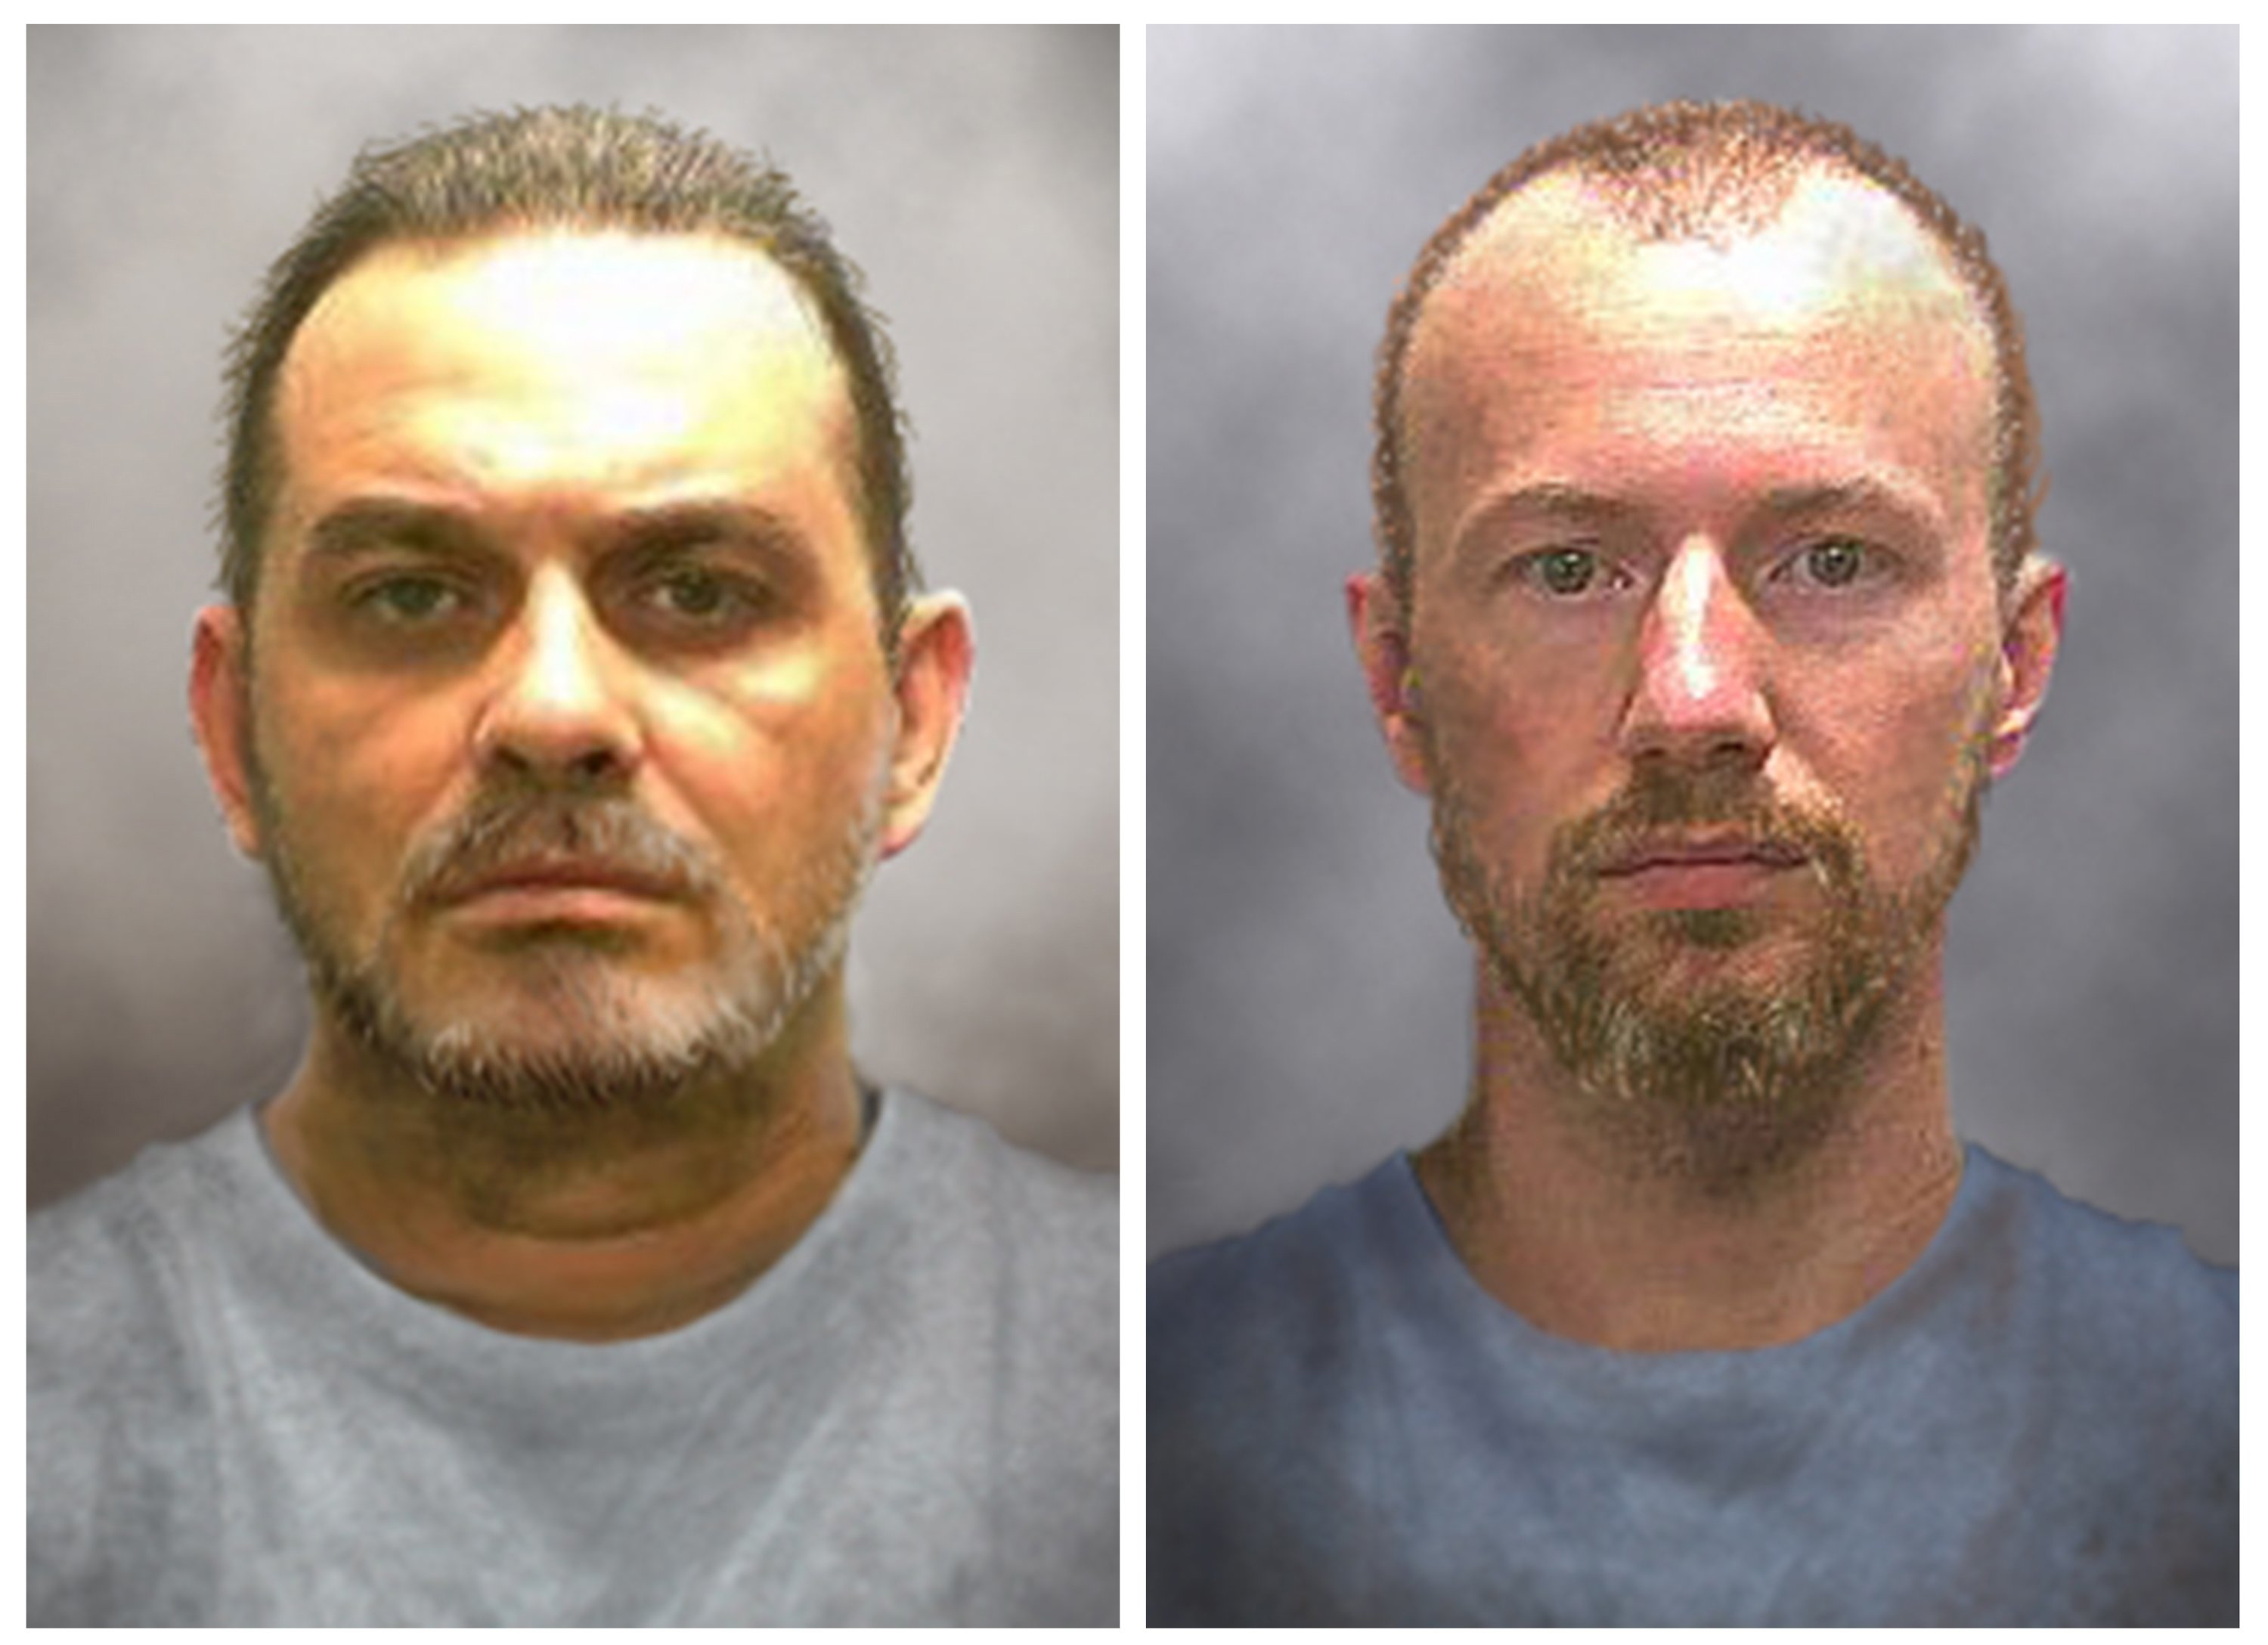 Prison inmates Richard Matt, 48, left, and David Sweat, 35, are seen in a combination of enhanced pictures released by the New York State police June 17, 2015, showing how they might look after escaping 12 days ago.